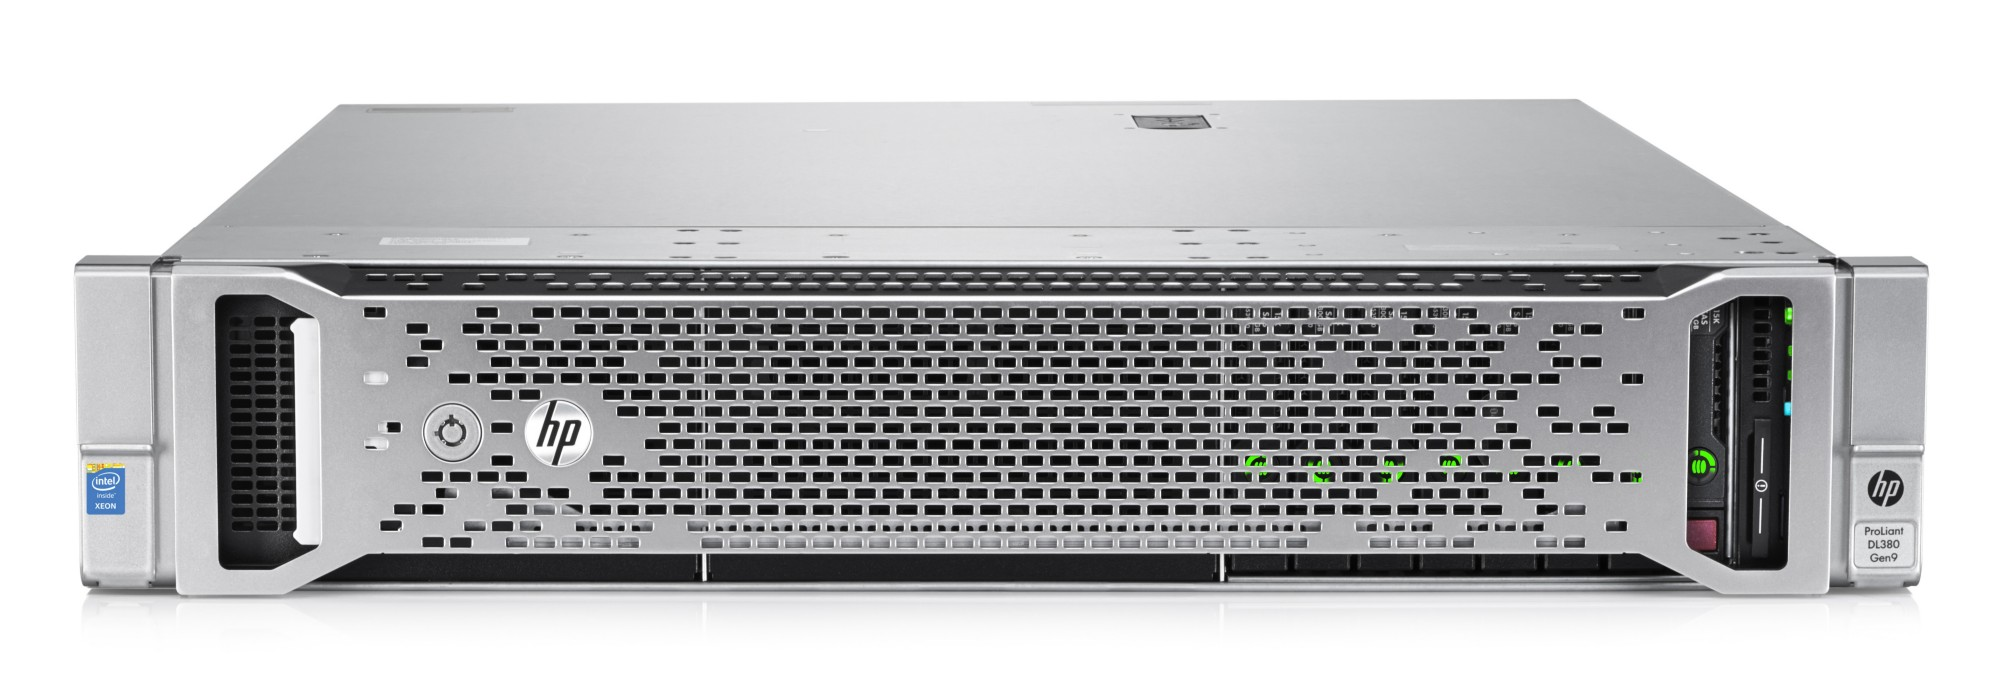 HPE 843557-425 PROLIANT DL380 GEN9 2.1GHZ E5-2620V4 500W RACK (2U) SERVER